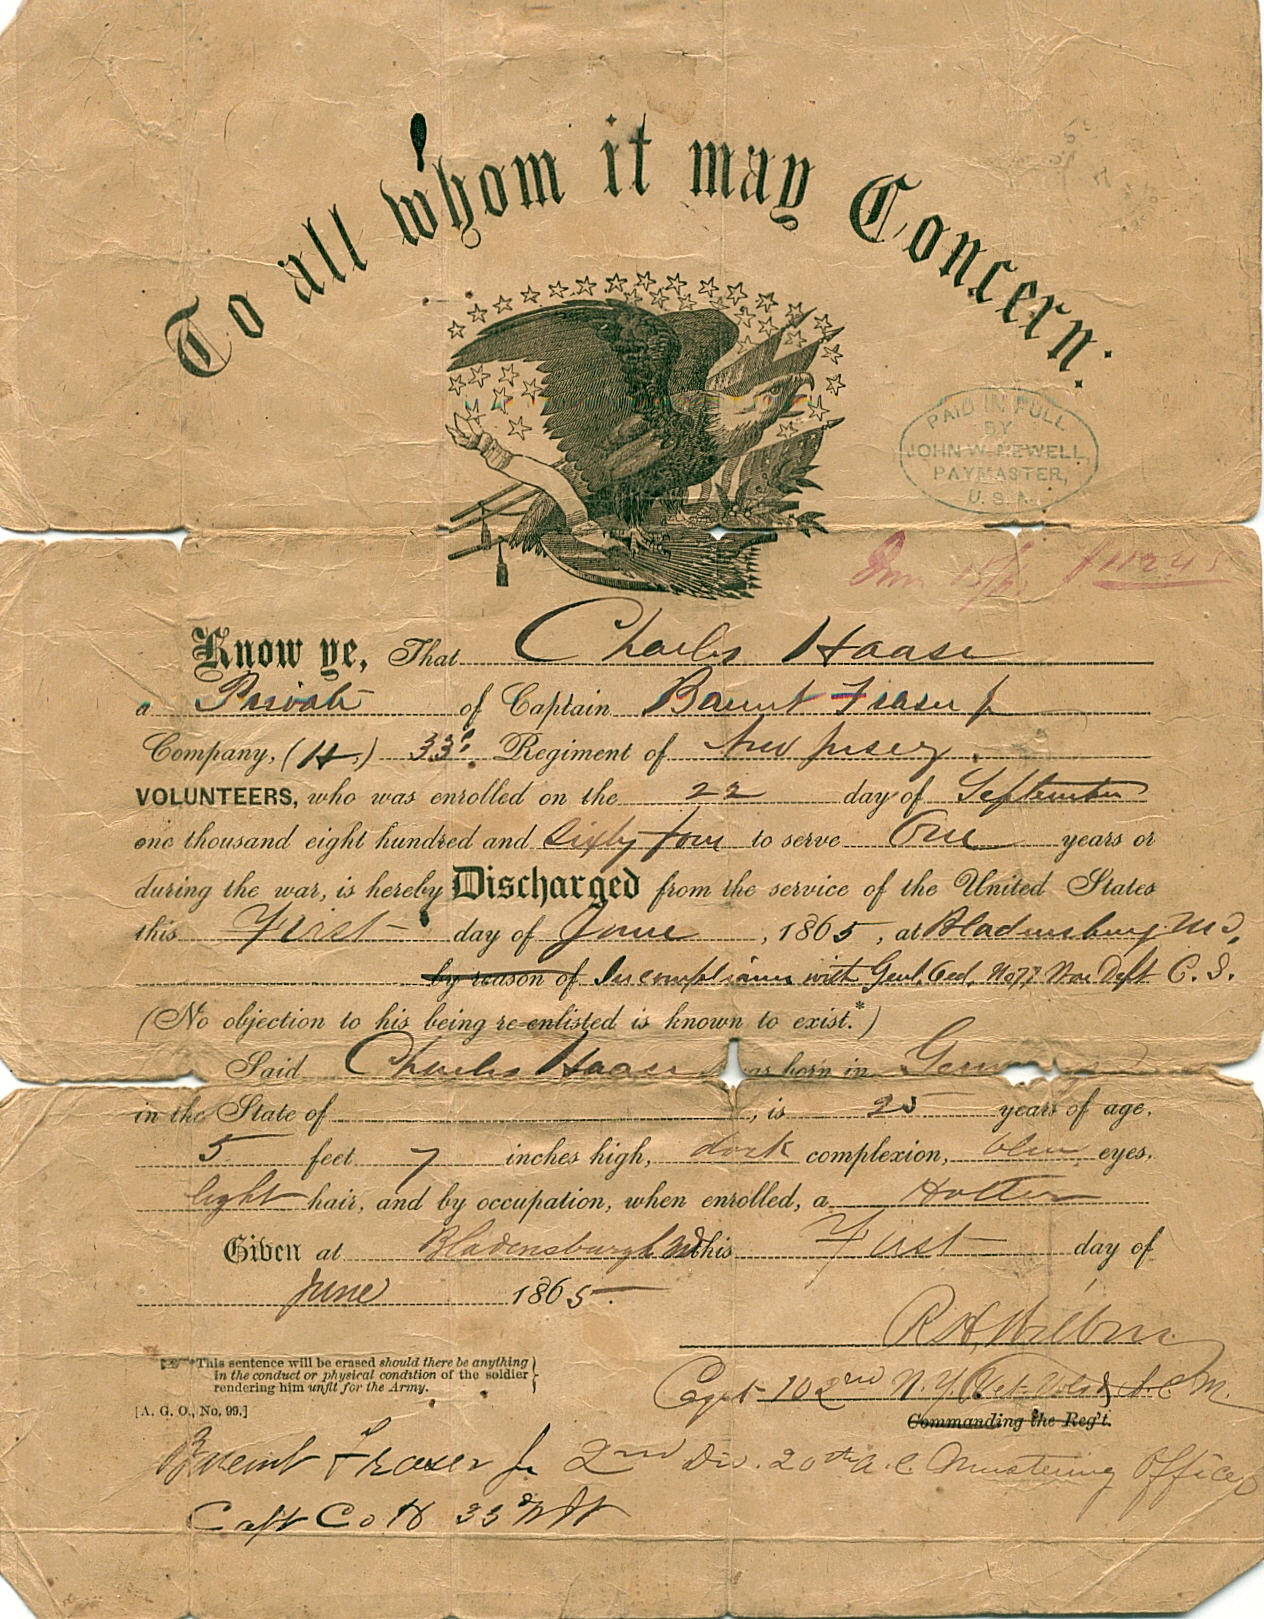 Charles Haase was discharged from the Army in June of 1865 at the end of the the Civil War.